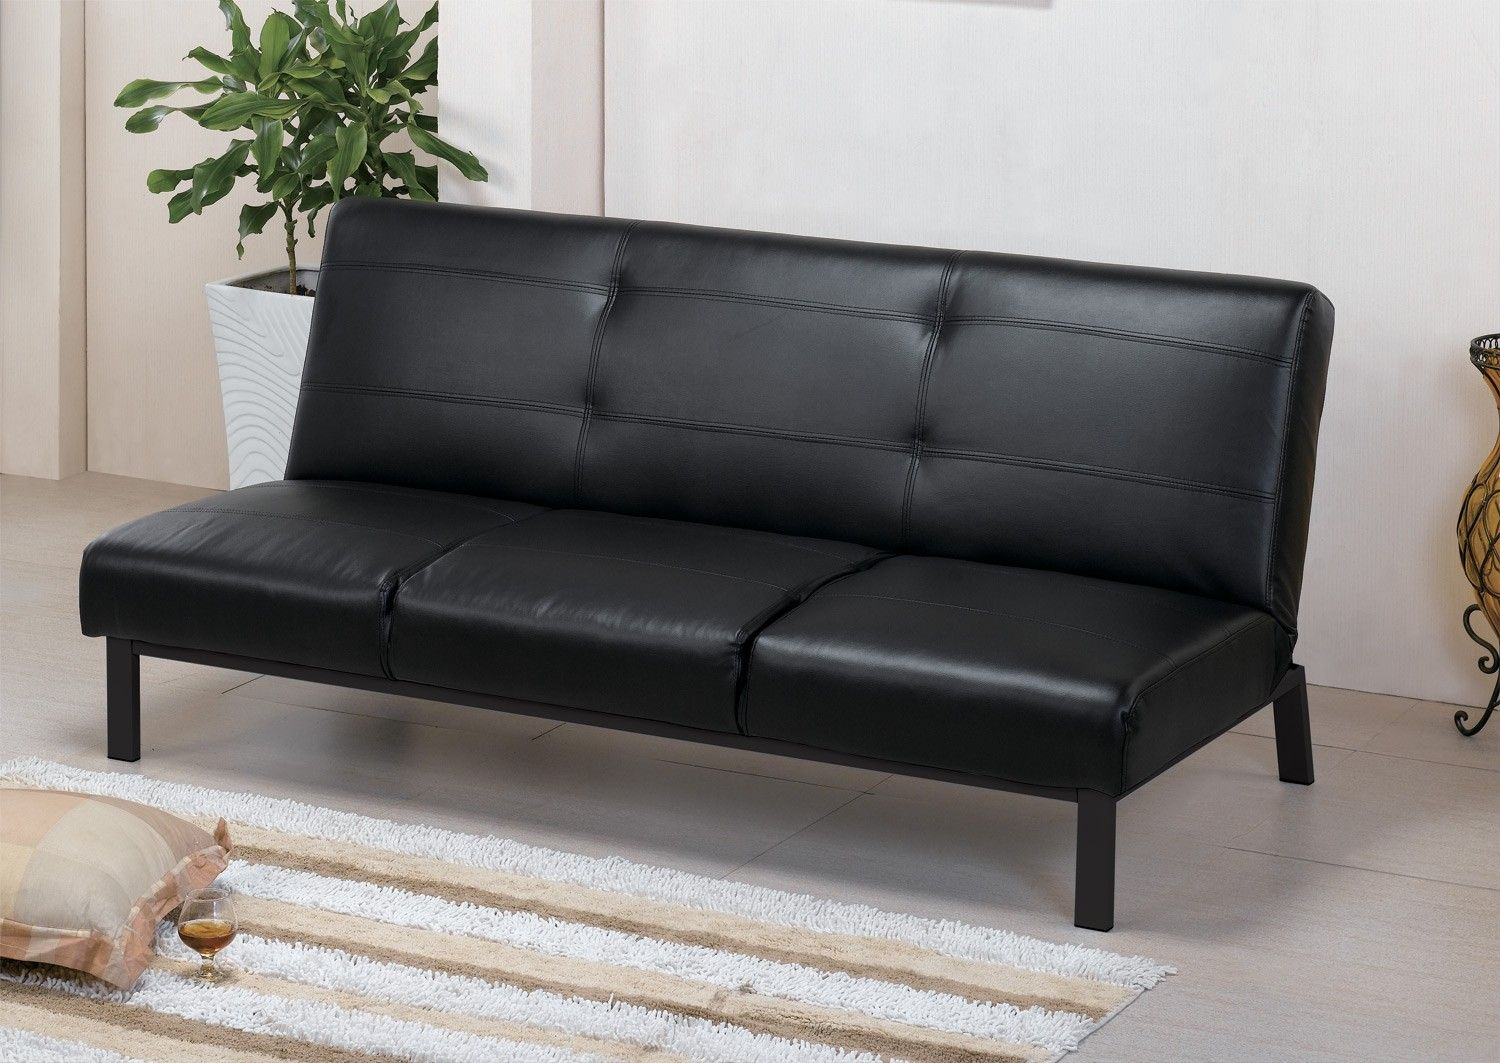 Queen Size Pull Out Sofa Bed Sofa bed queen, Queen size